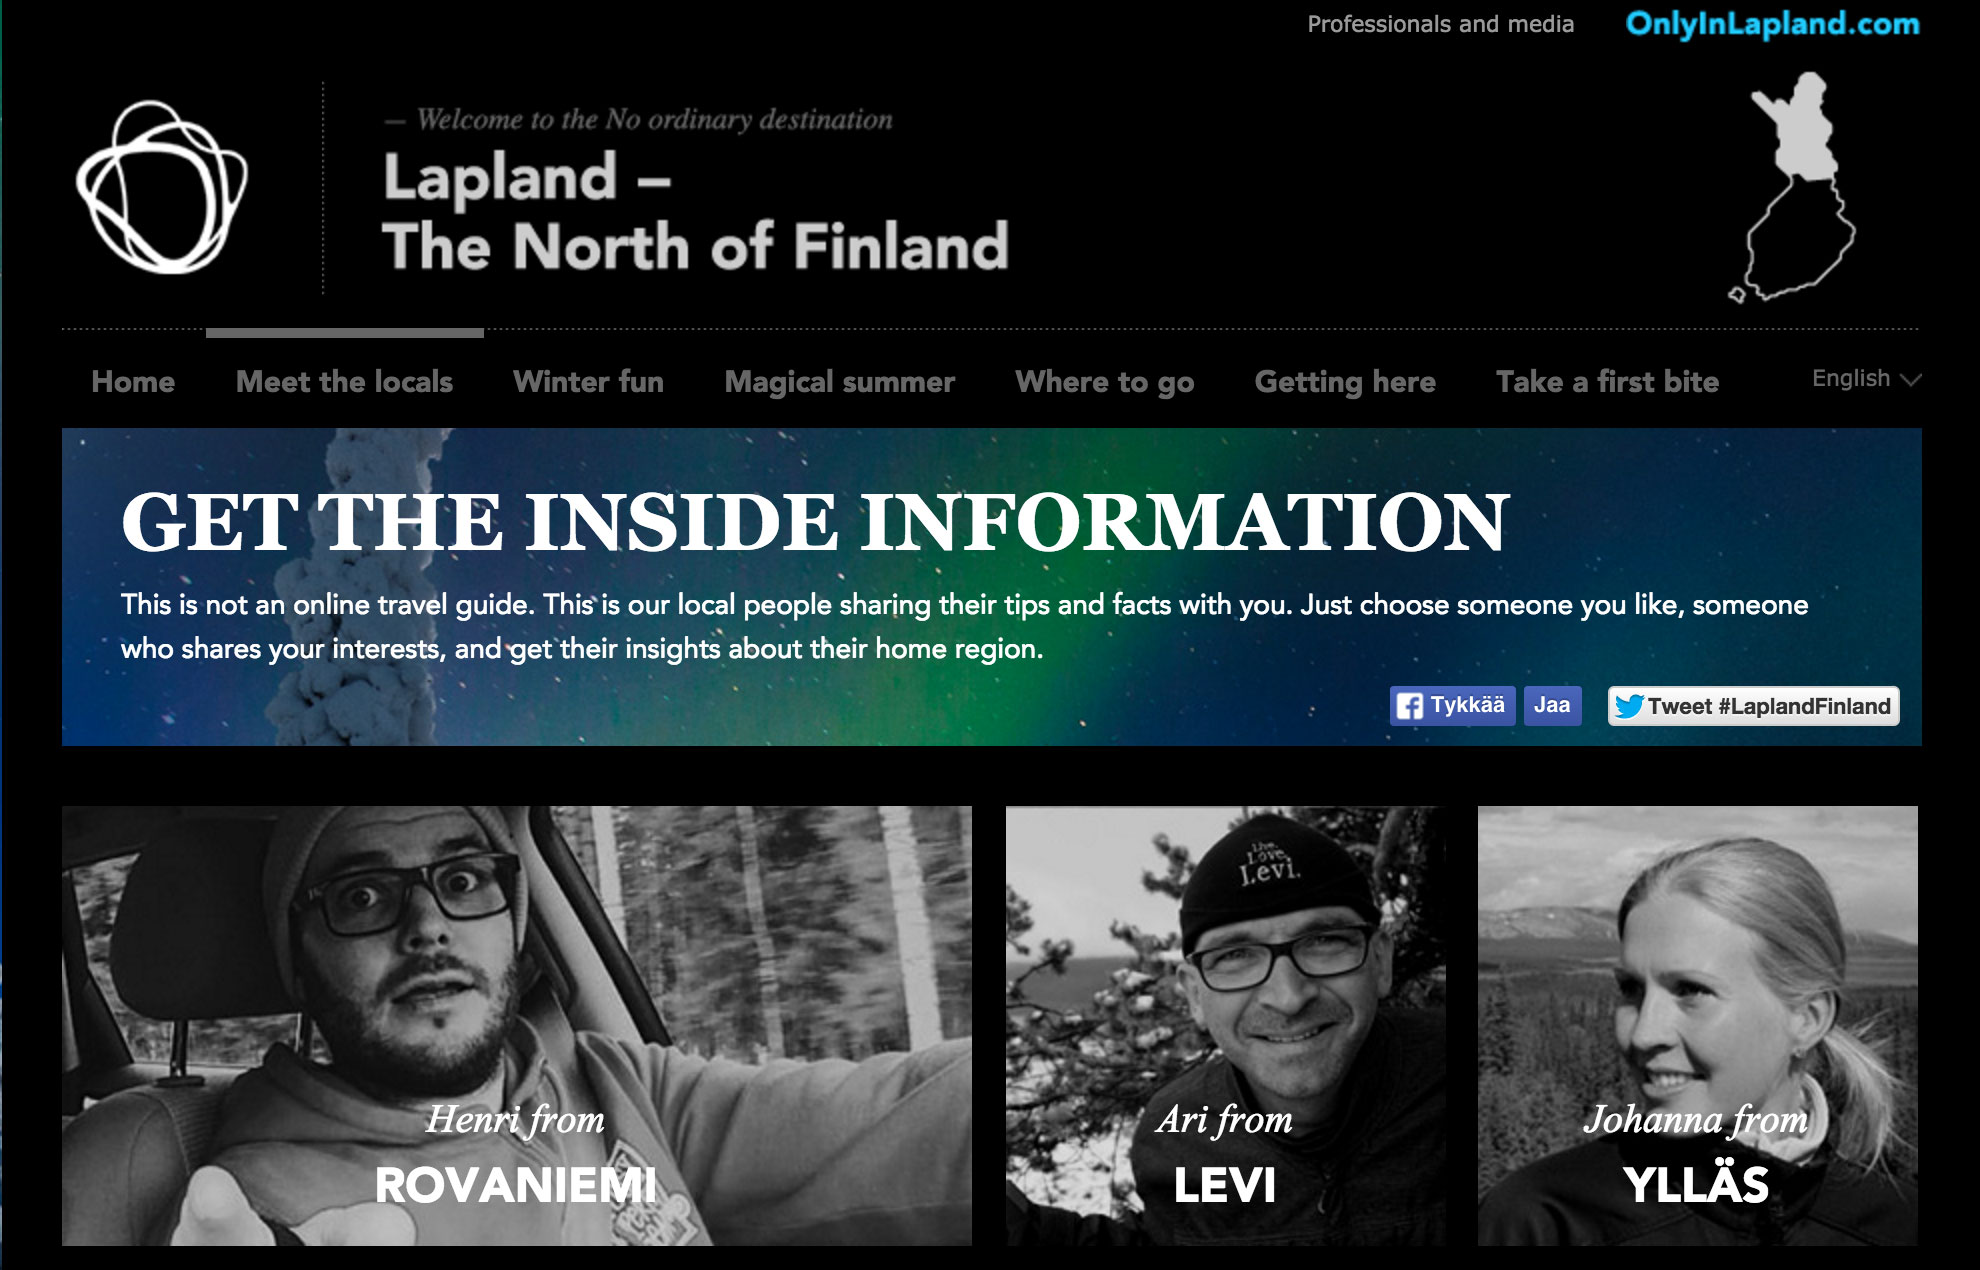 nlyinlapland_destinationmarketing